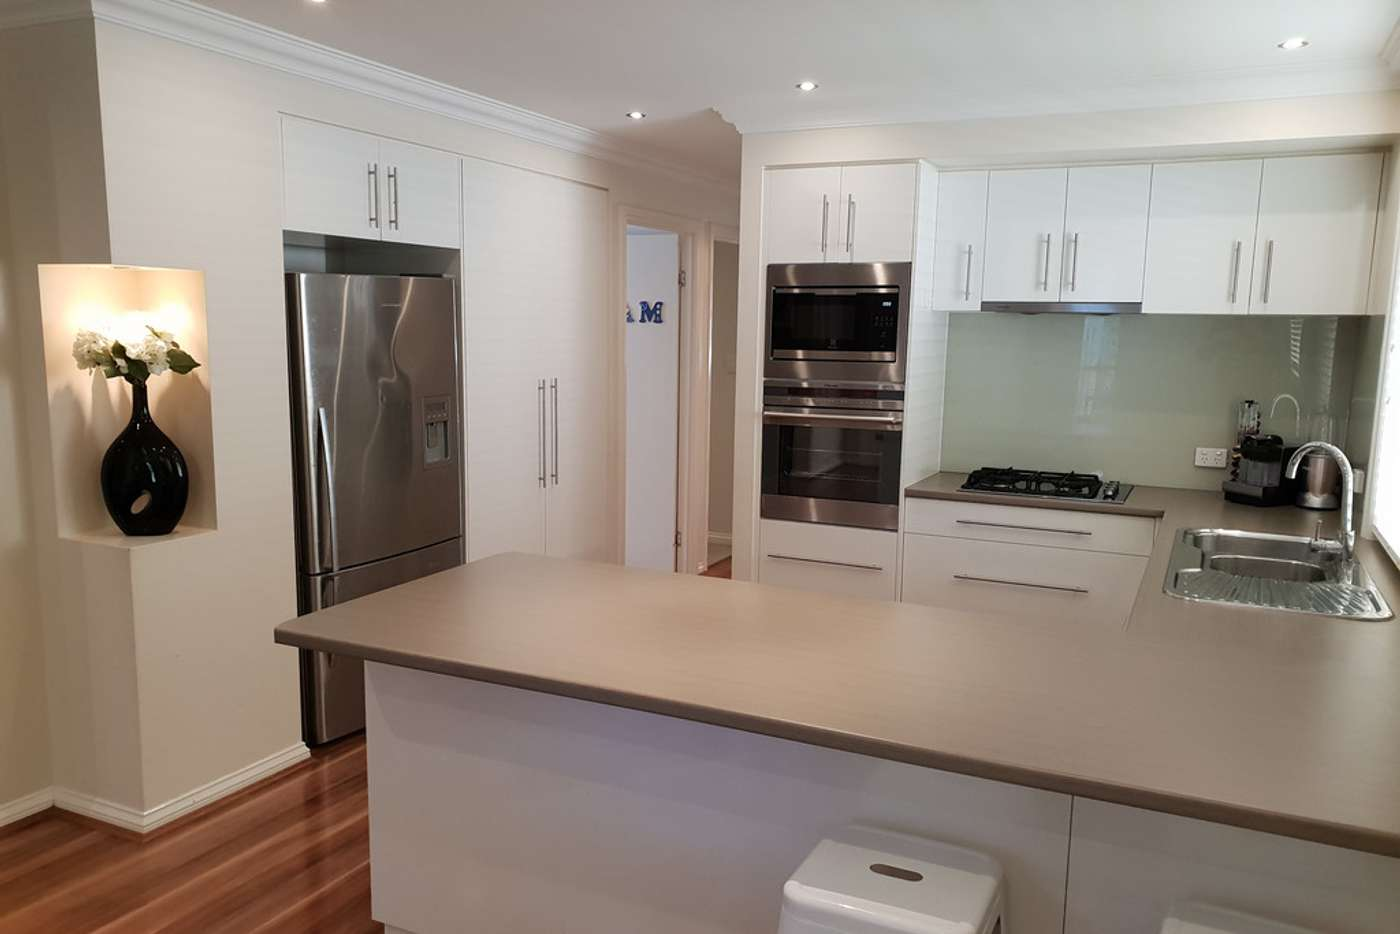 Sixth view of Homely house listing, 36 Livermore Street, Redcliffe QLD 4020